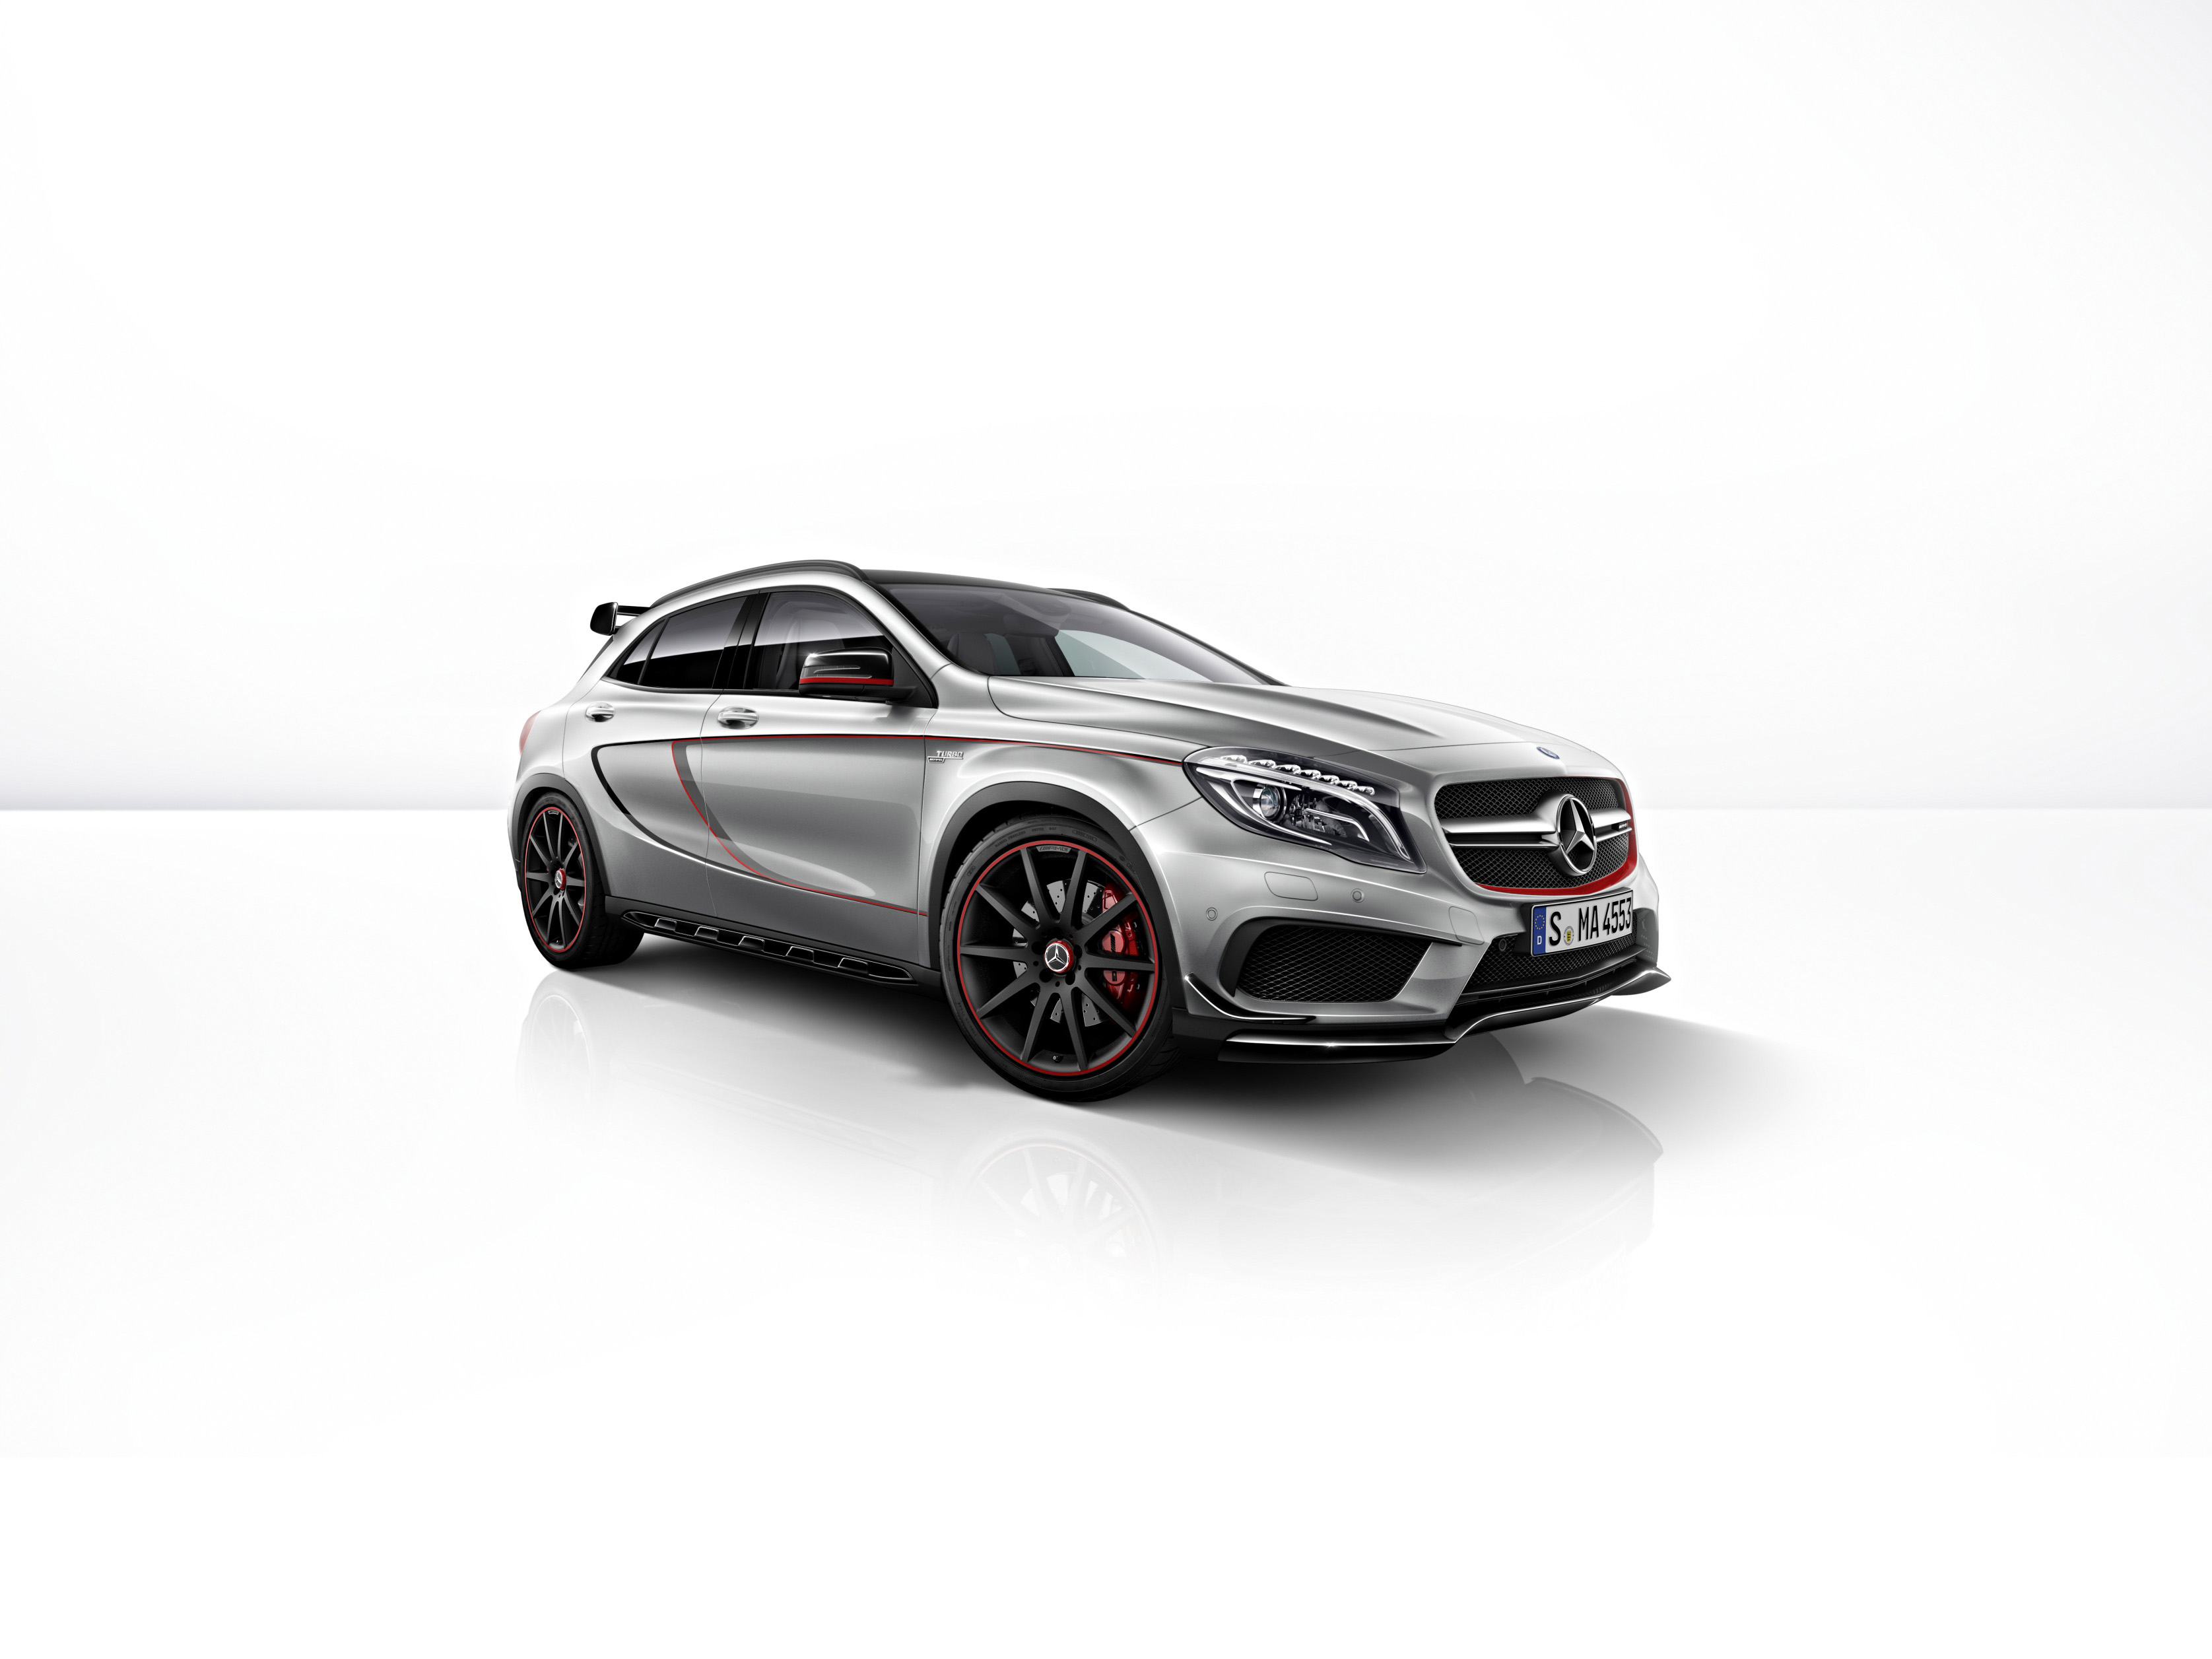 mercedes-benz wallpaper (Mercedes-Benz GLA-Class)